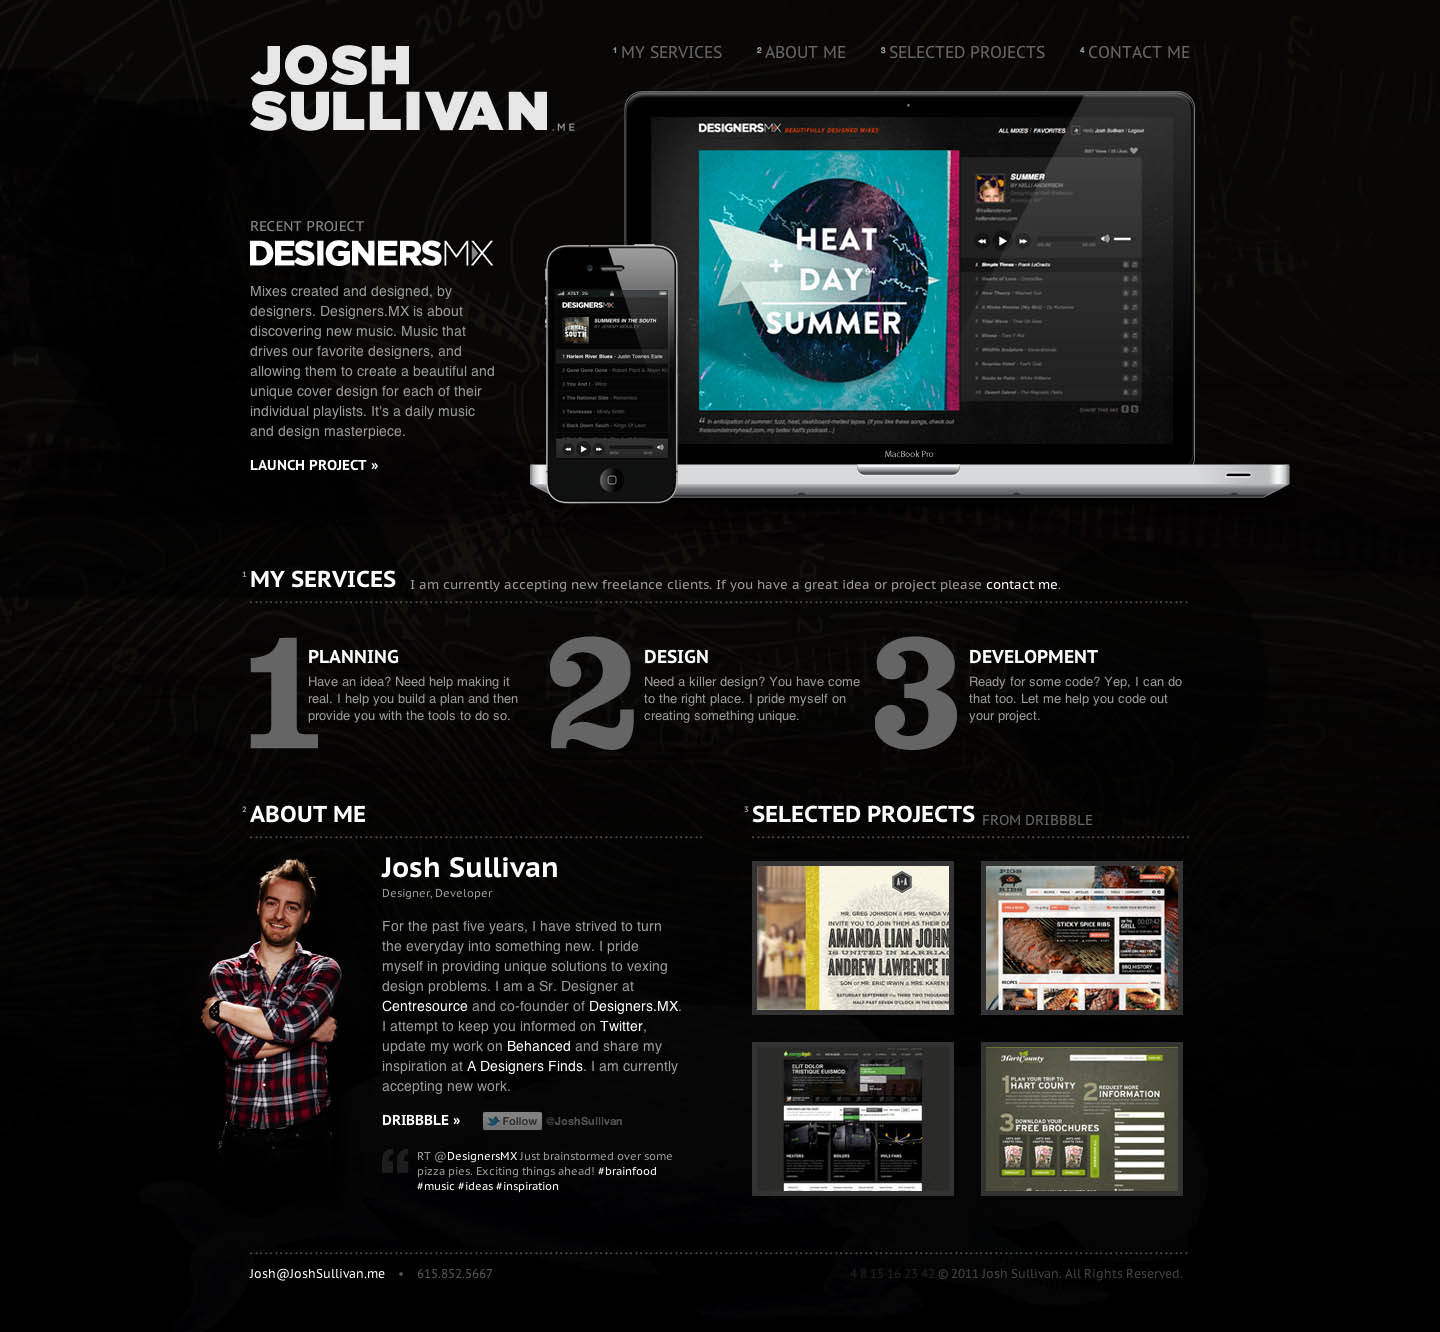 Josh Sullivan Website Screenshot